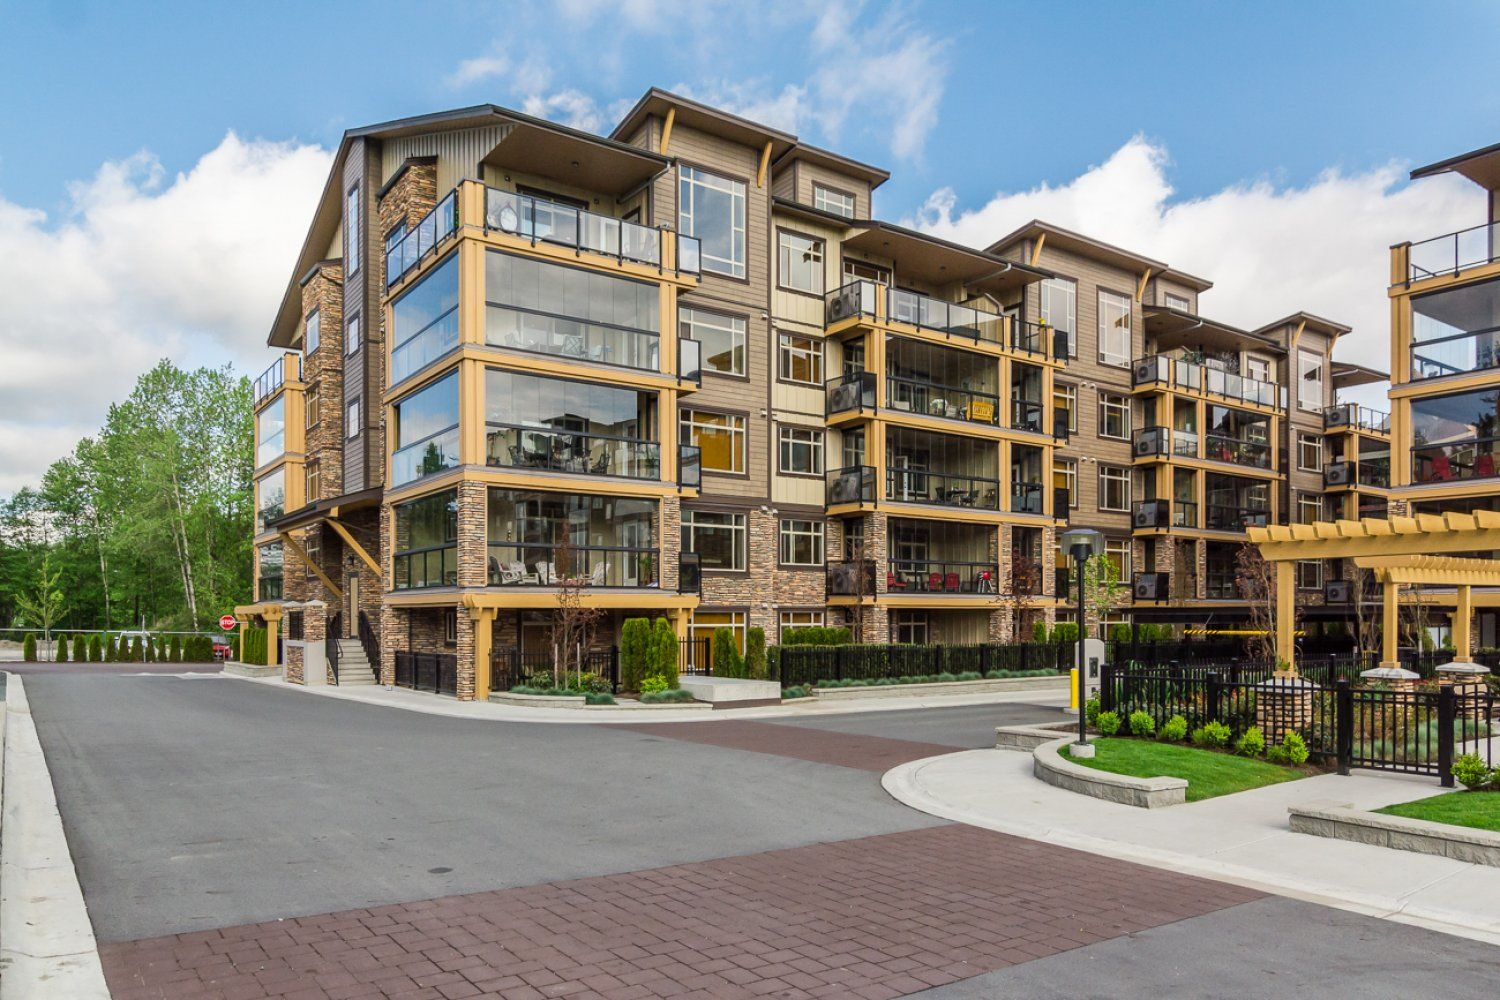 """Photo 3: Photos: 509 8258 207A Street in Langley: Willoughby Heights Condo for sale in """"YORKSON CREEK (BLG A)"""" : MLS®# R2221052"""